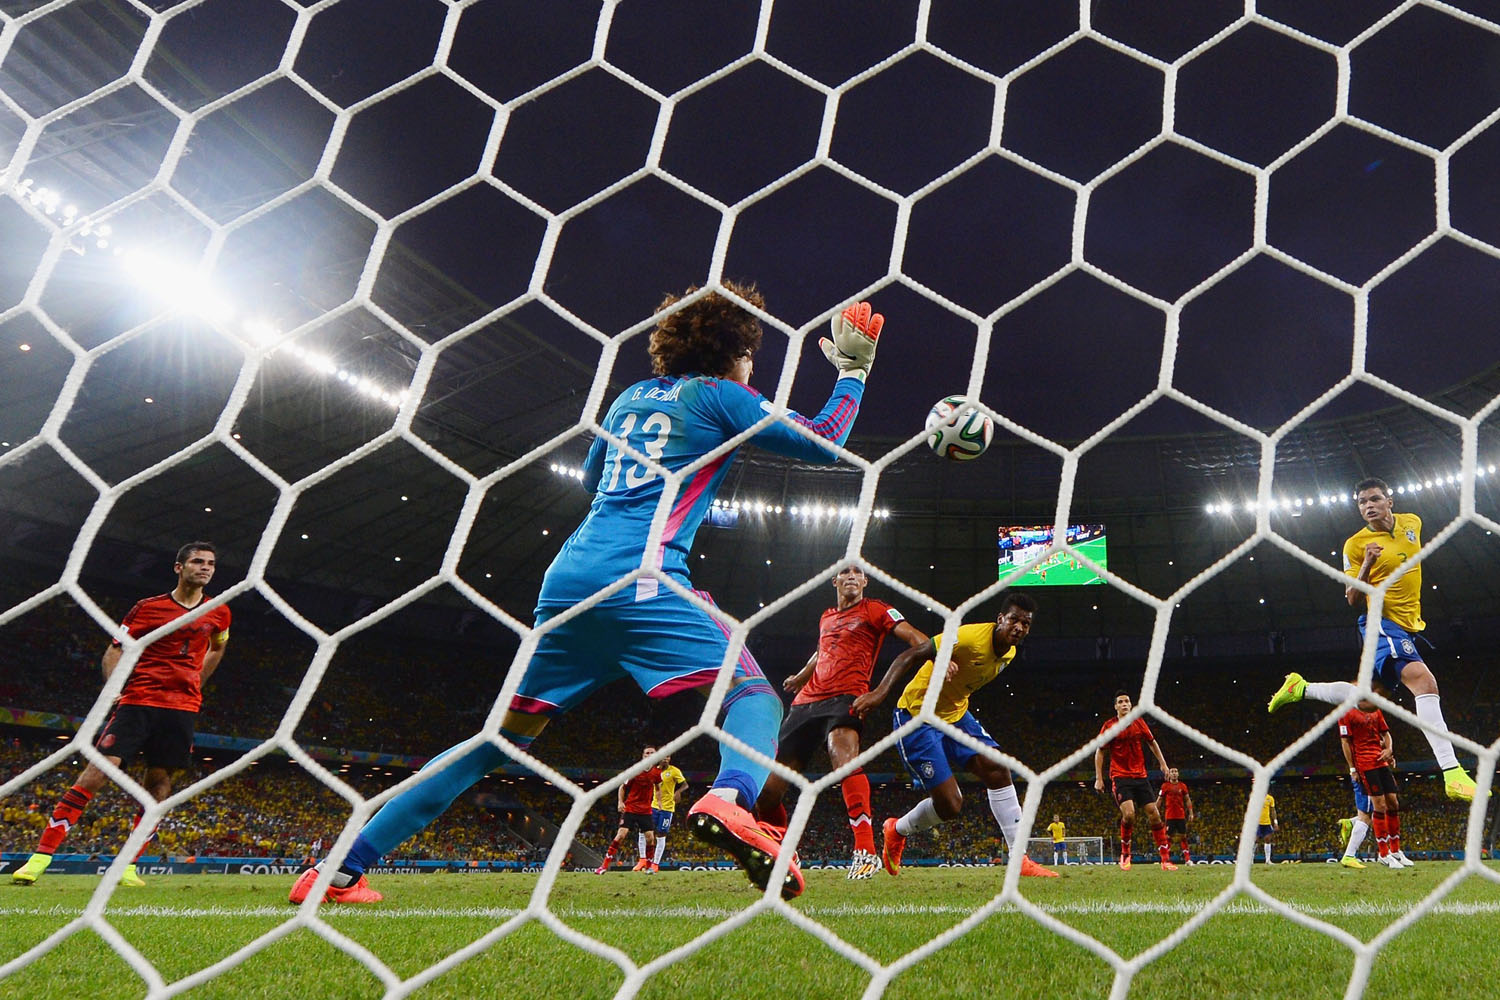 June 17, 2014 . Guillermo Ochoa of Mexico makes a save after a header by Thiago Silva of Brazil (R) during the 2014 FIFA World Cup Brazil Group A match between Brazil and Mexico at Castelao on in Fortaleza, Brazil.